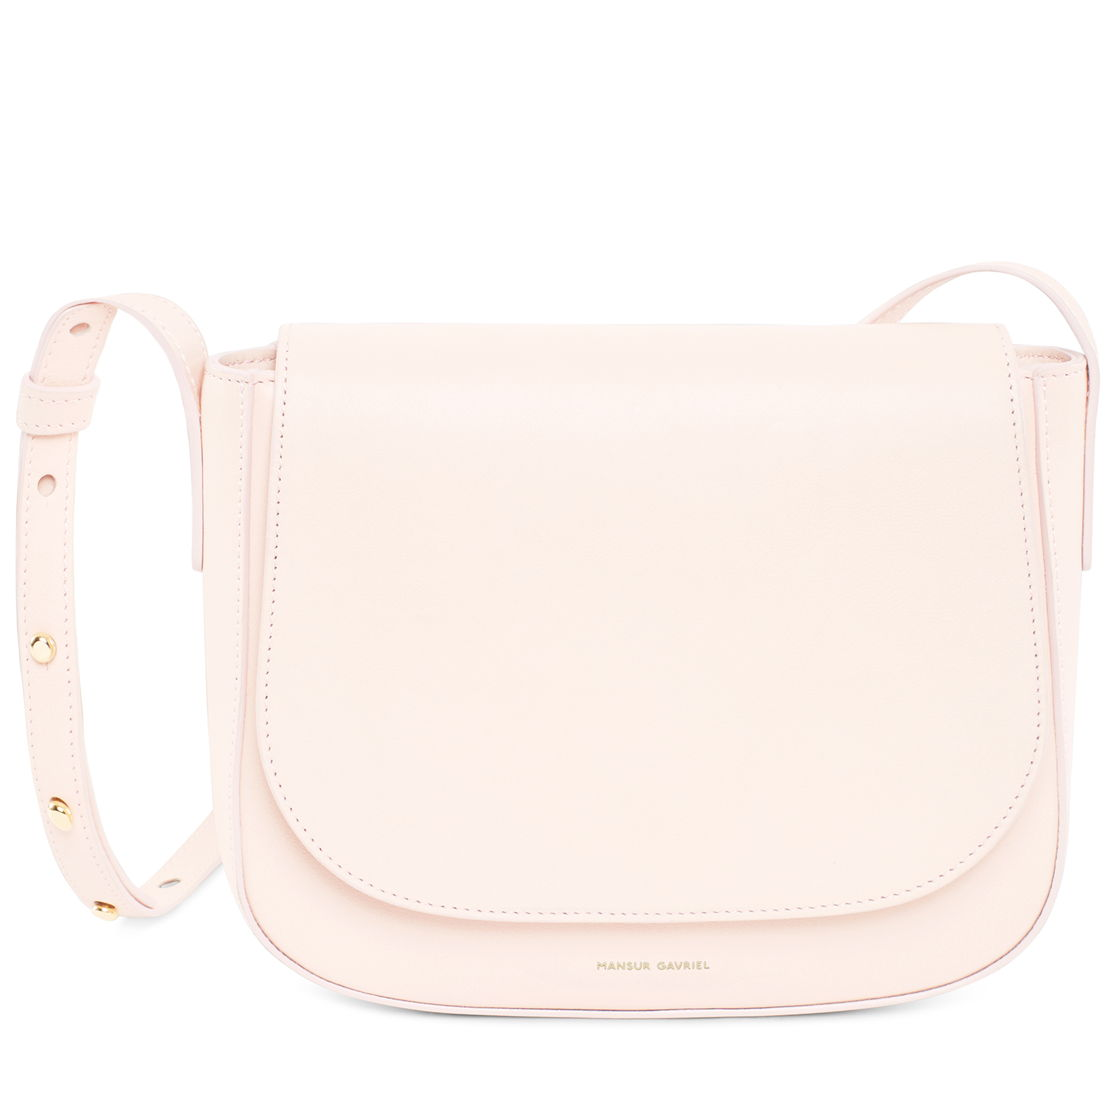 Mansur Gavriel Cross Body Rosa 615 euro at Graanmarkt 13